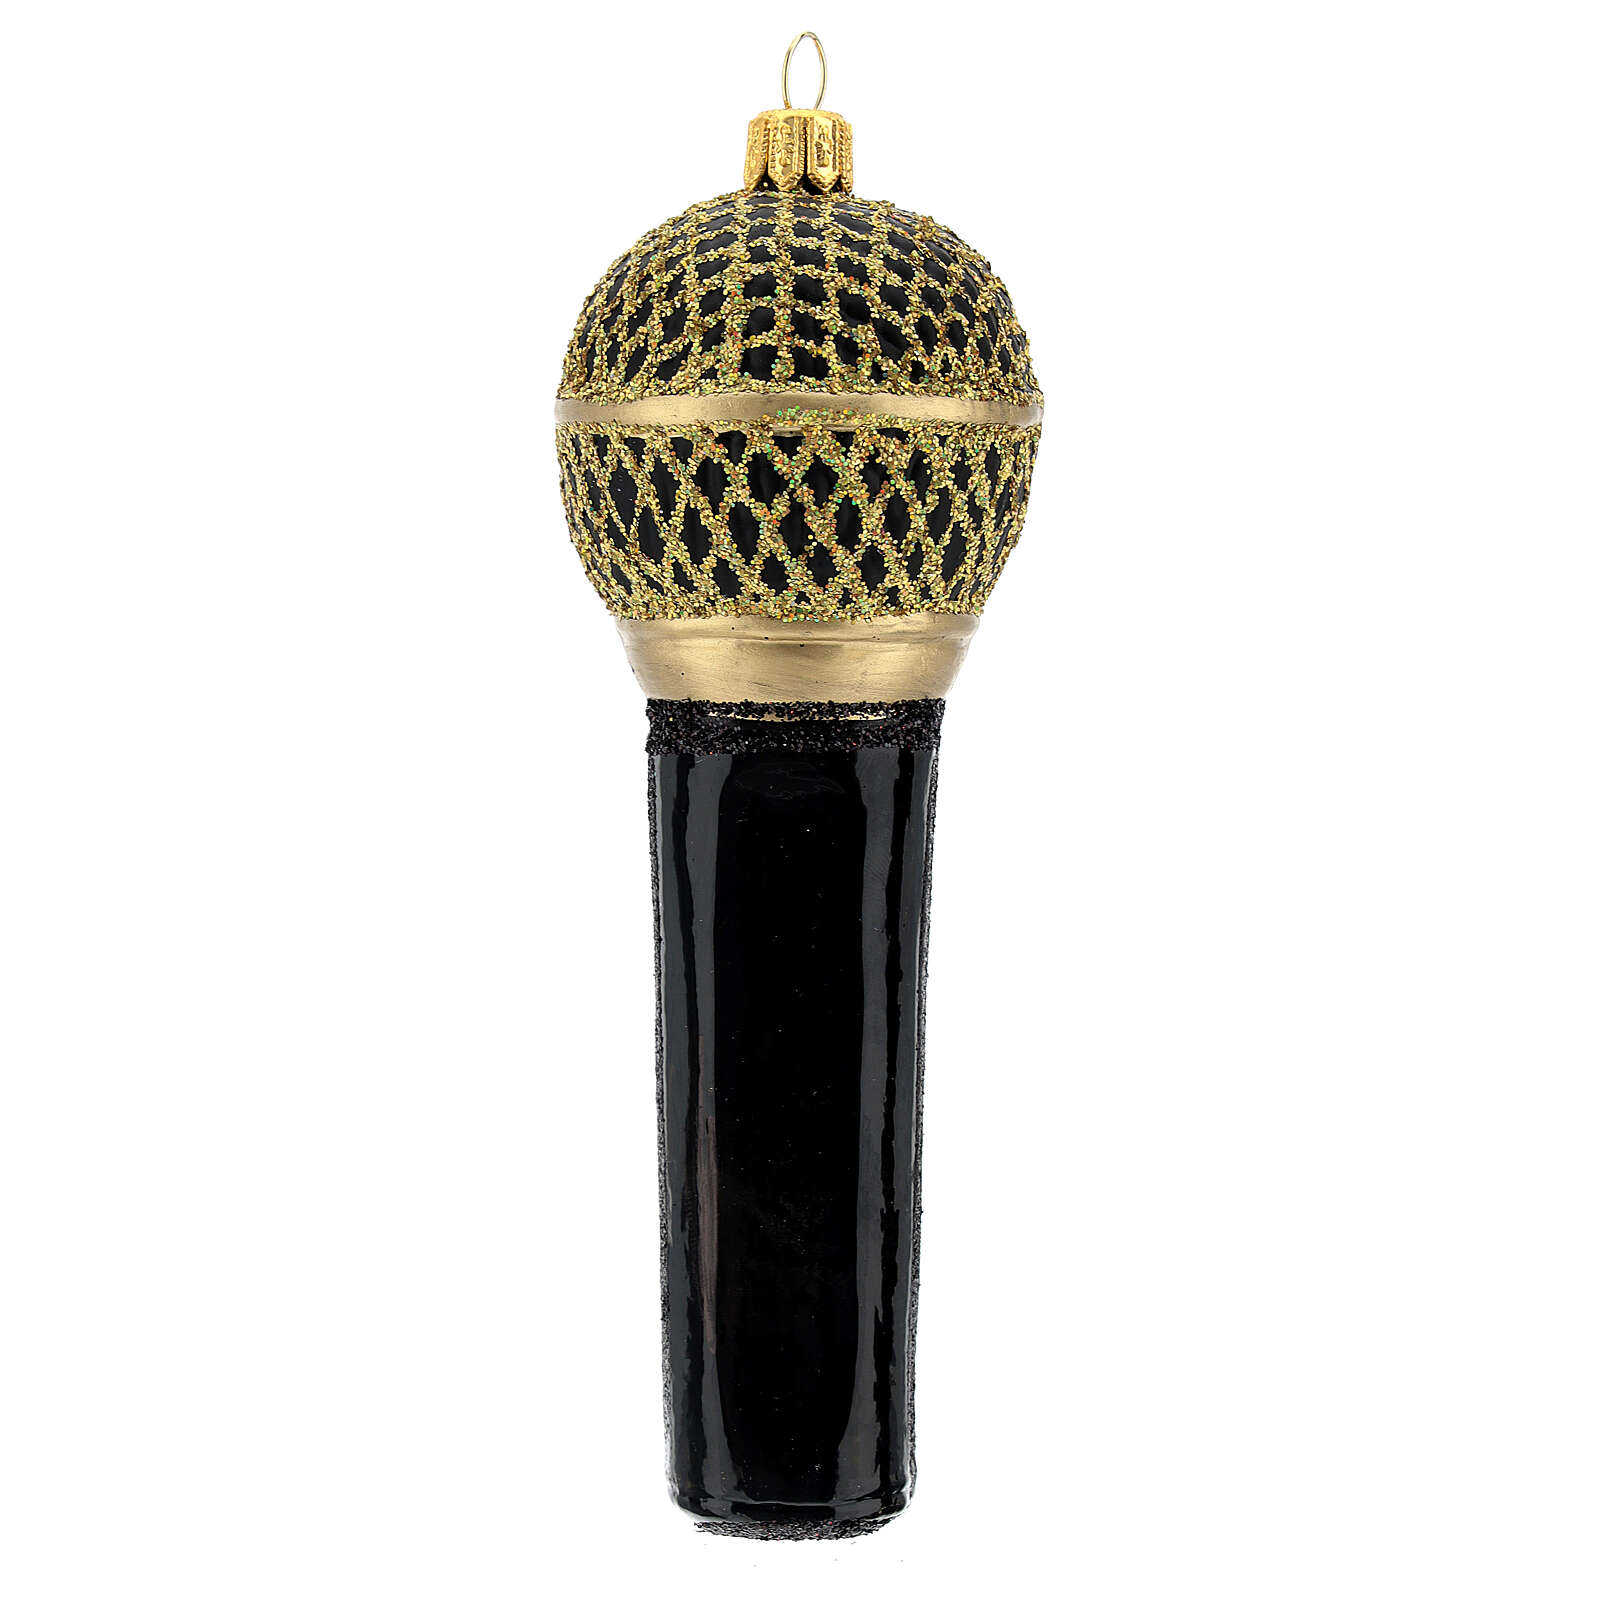 Blown glass Christmas ornament, microphone in black gold 4